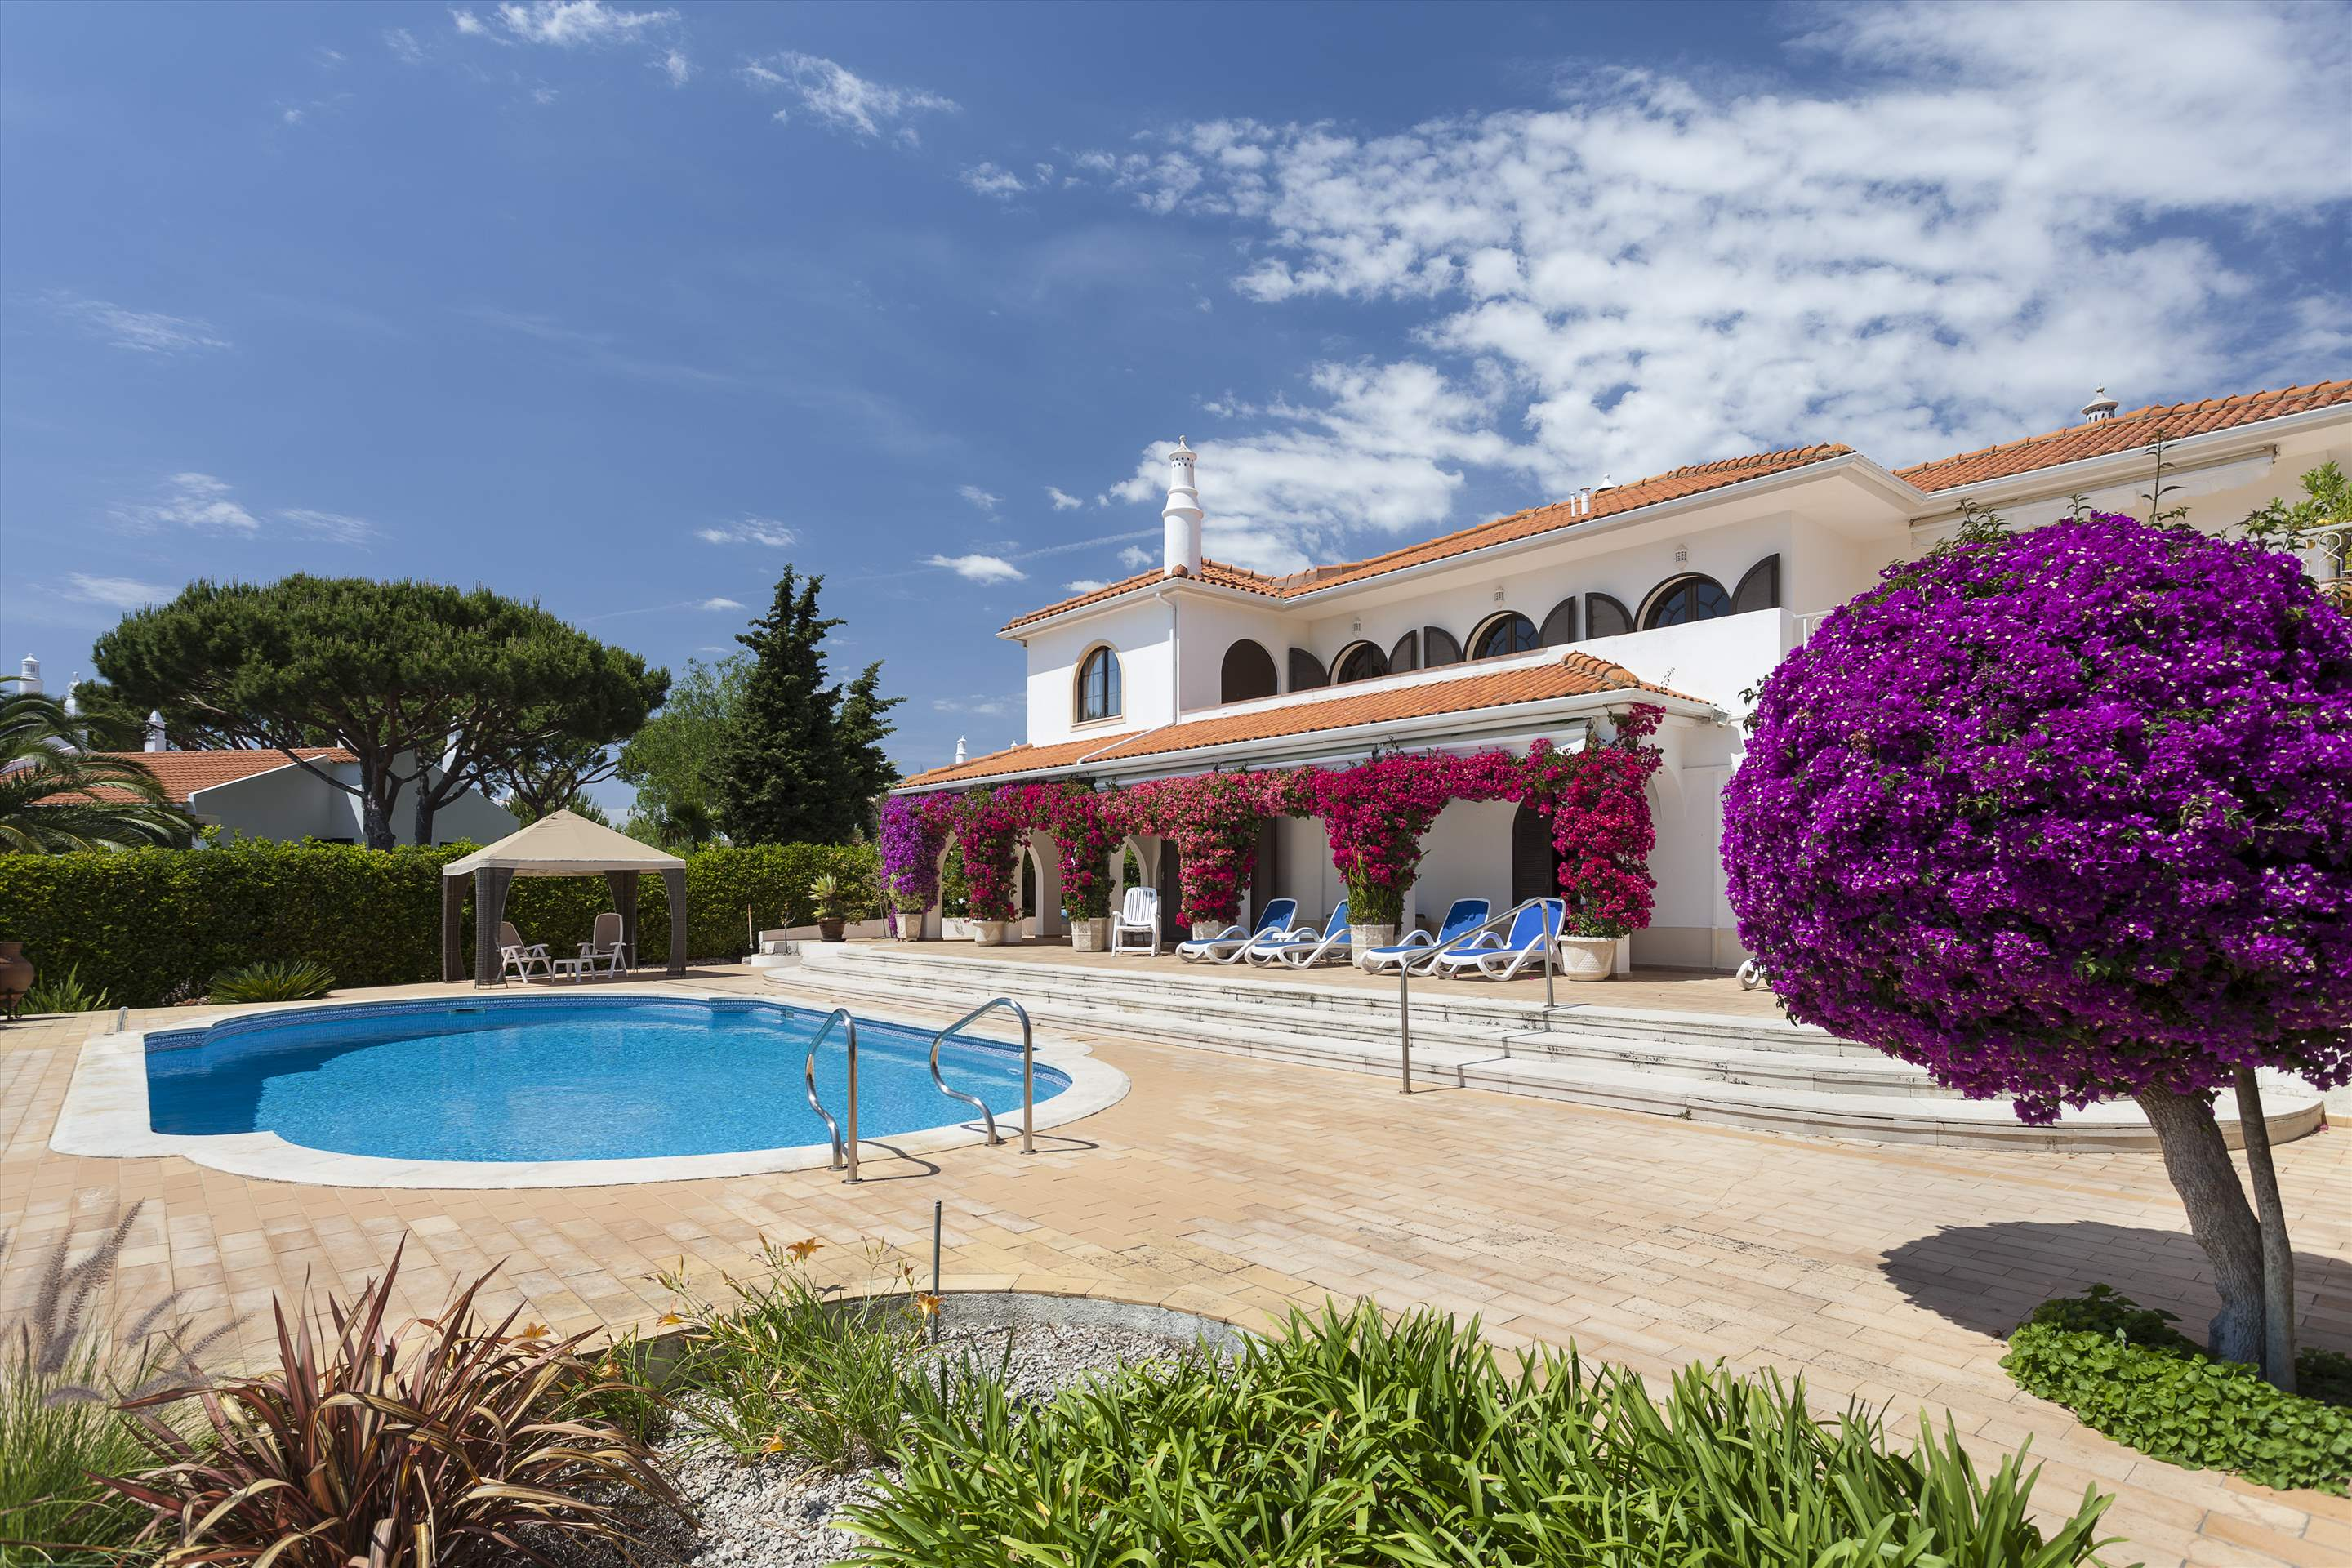 Villa Lake View, 4 bedroom villa in Quinta do Lago, Algarve Photo #10